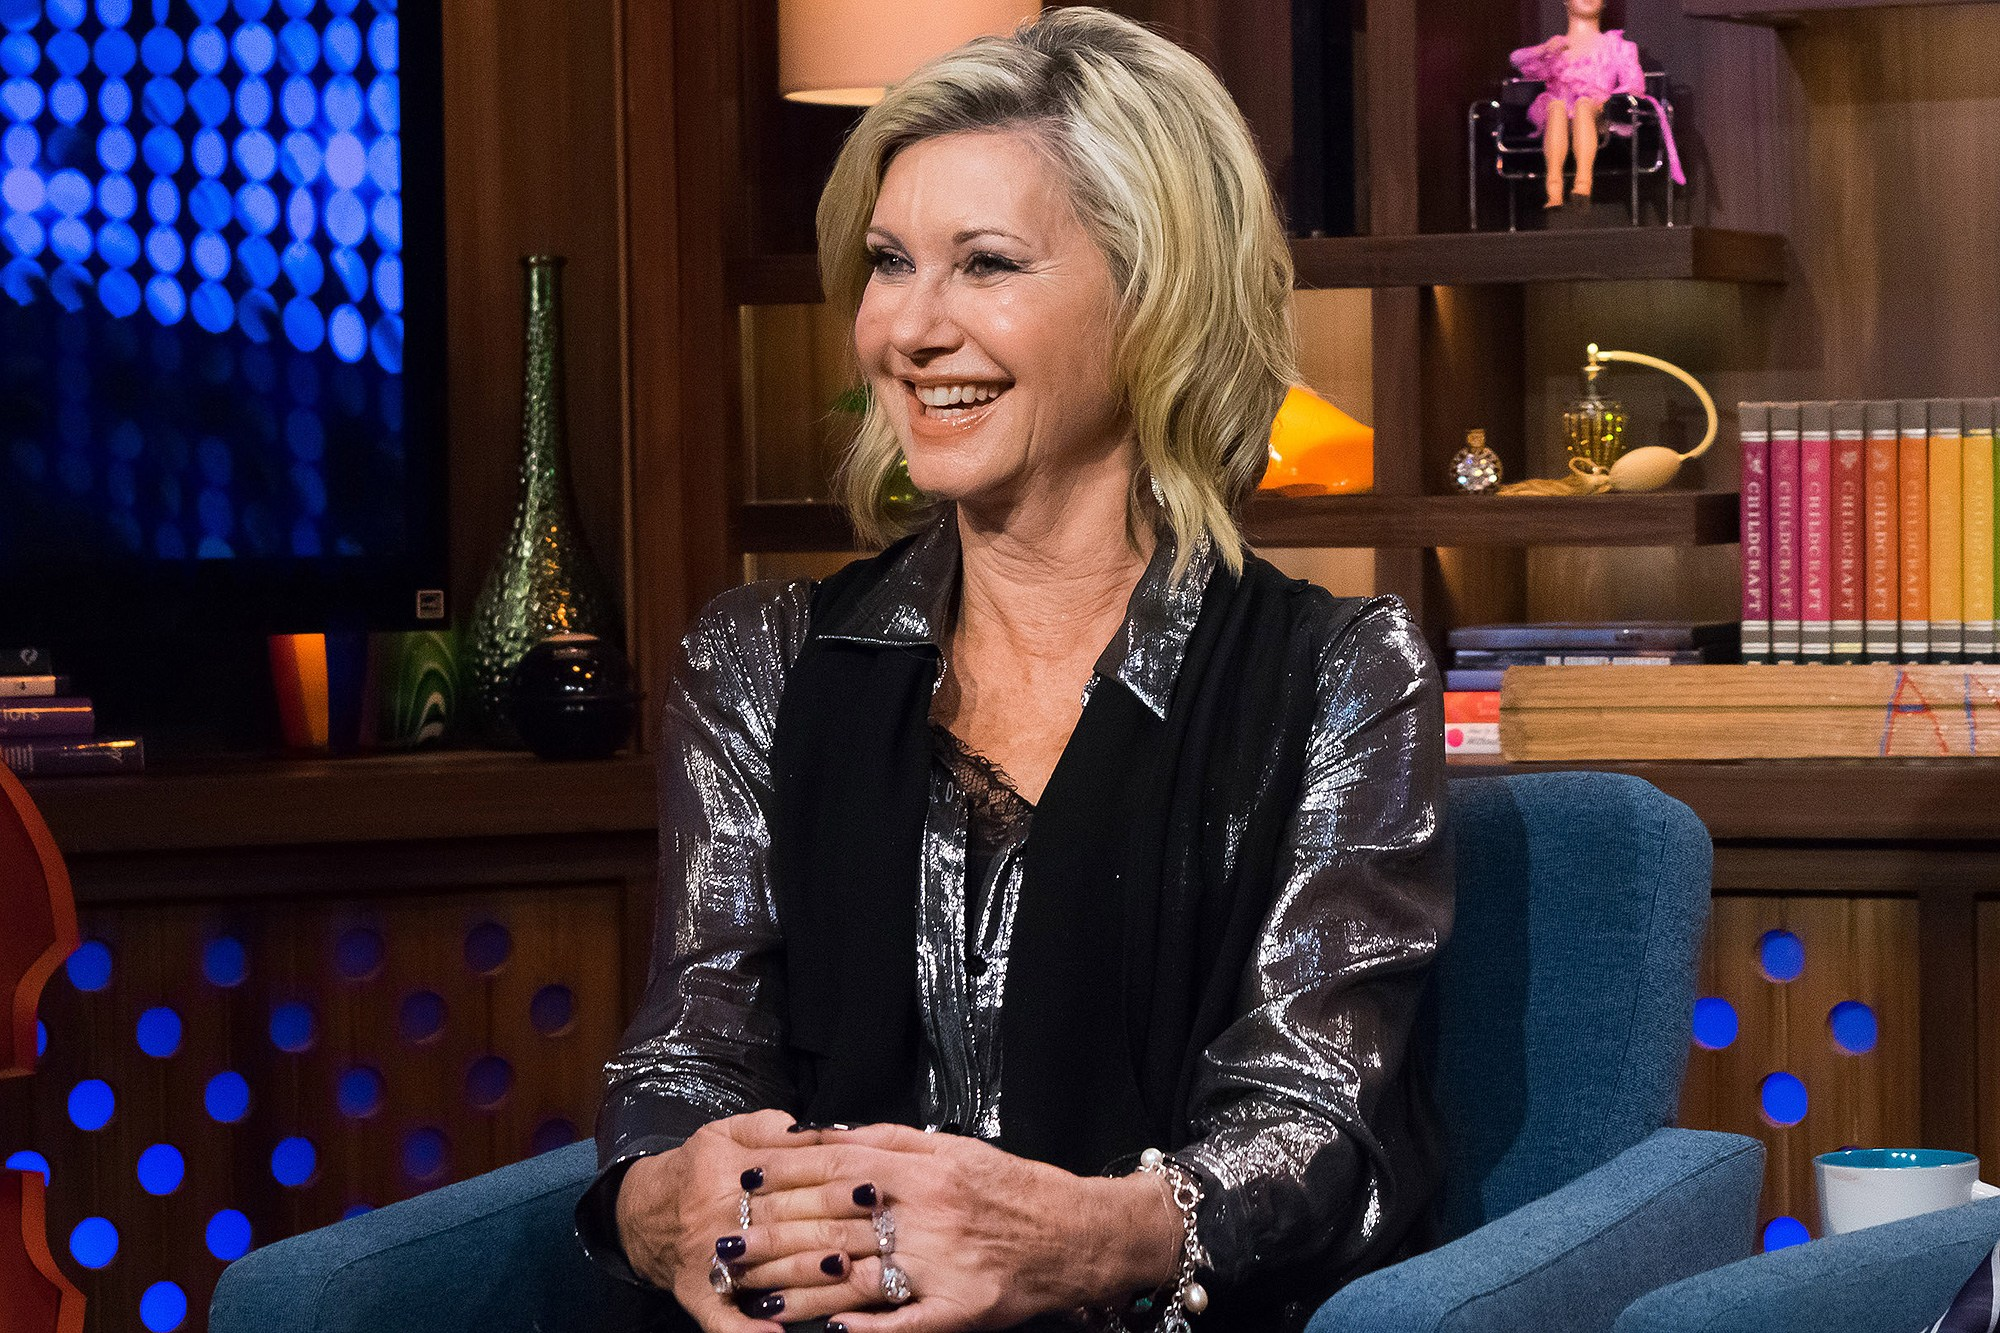 WATCH WHAT HAPPENS LIVE -- Pictured: Olivia Newton-John -- (Photo by: Charles Sykes/Bravo/NBCU Photo Bank via Getty Images)